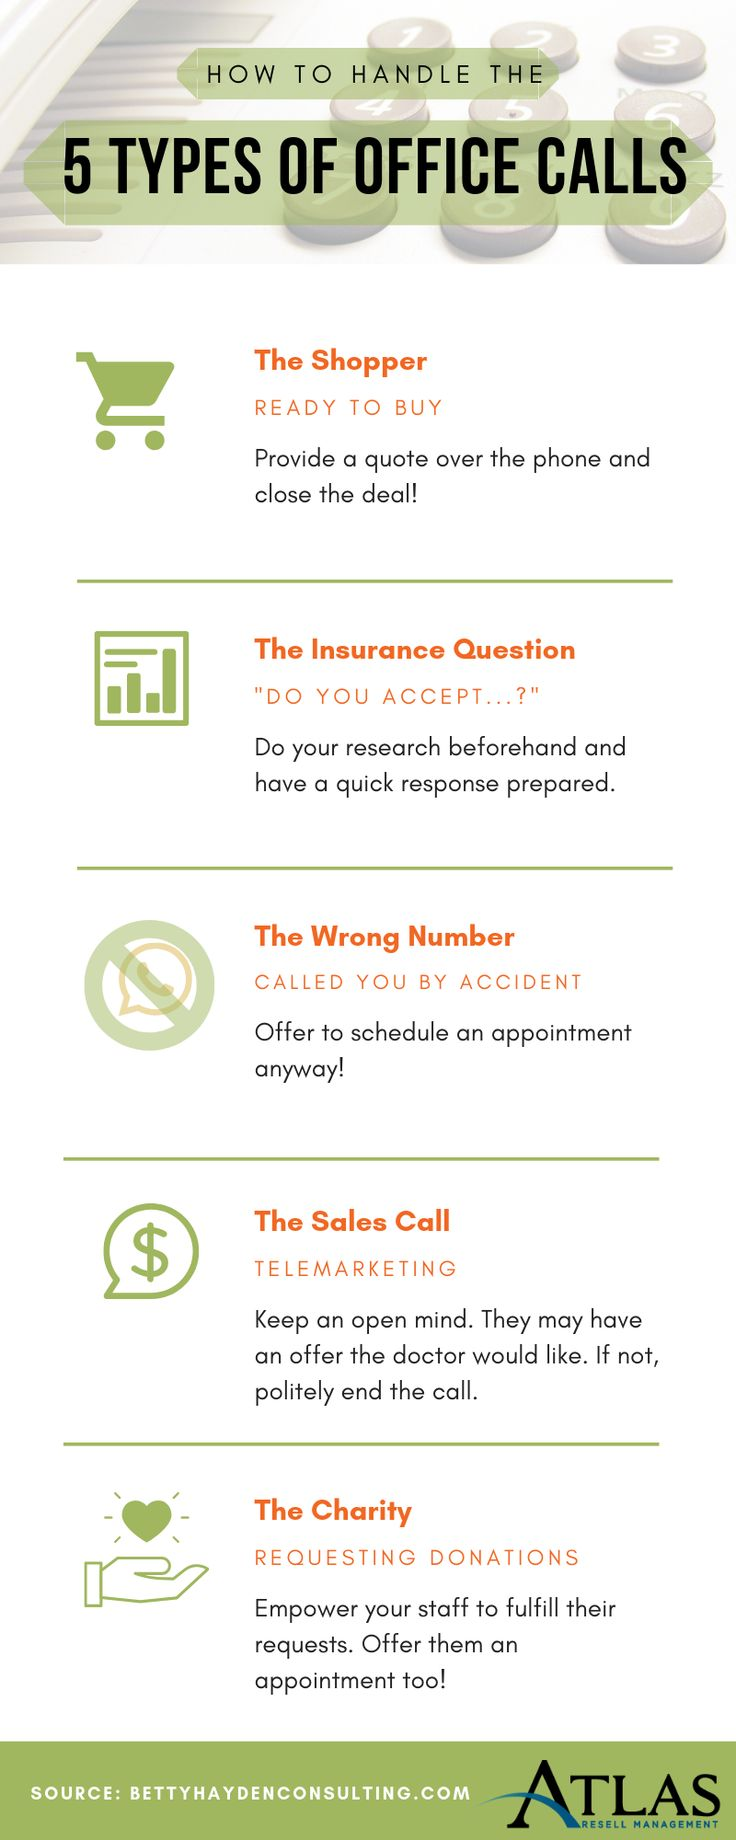 Dental tip how to handle the 5 types of office calls